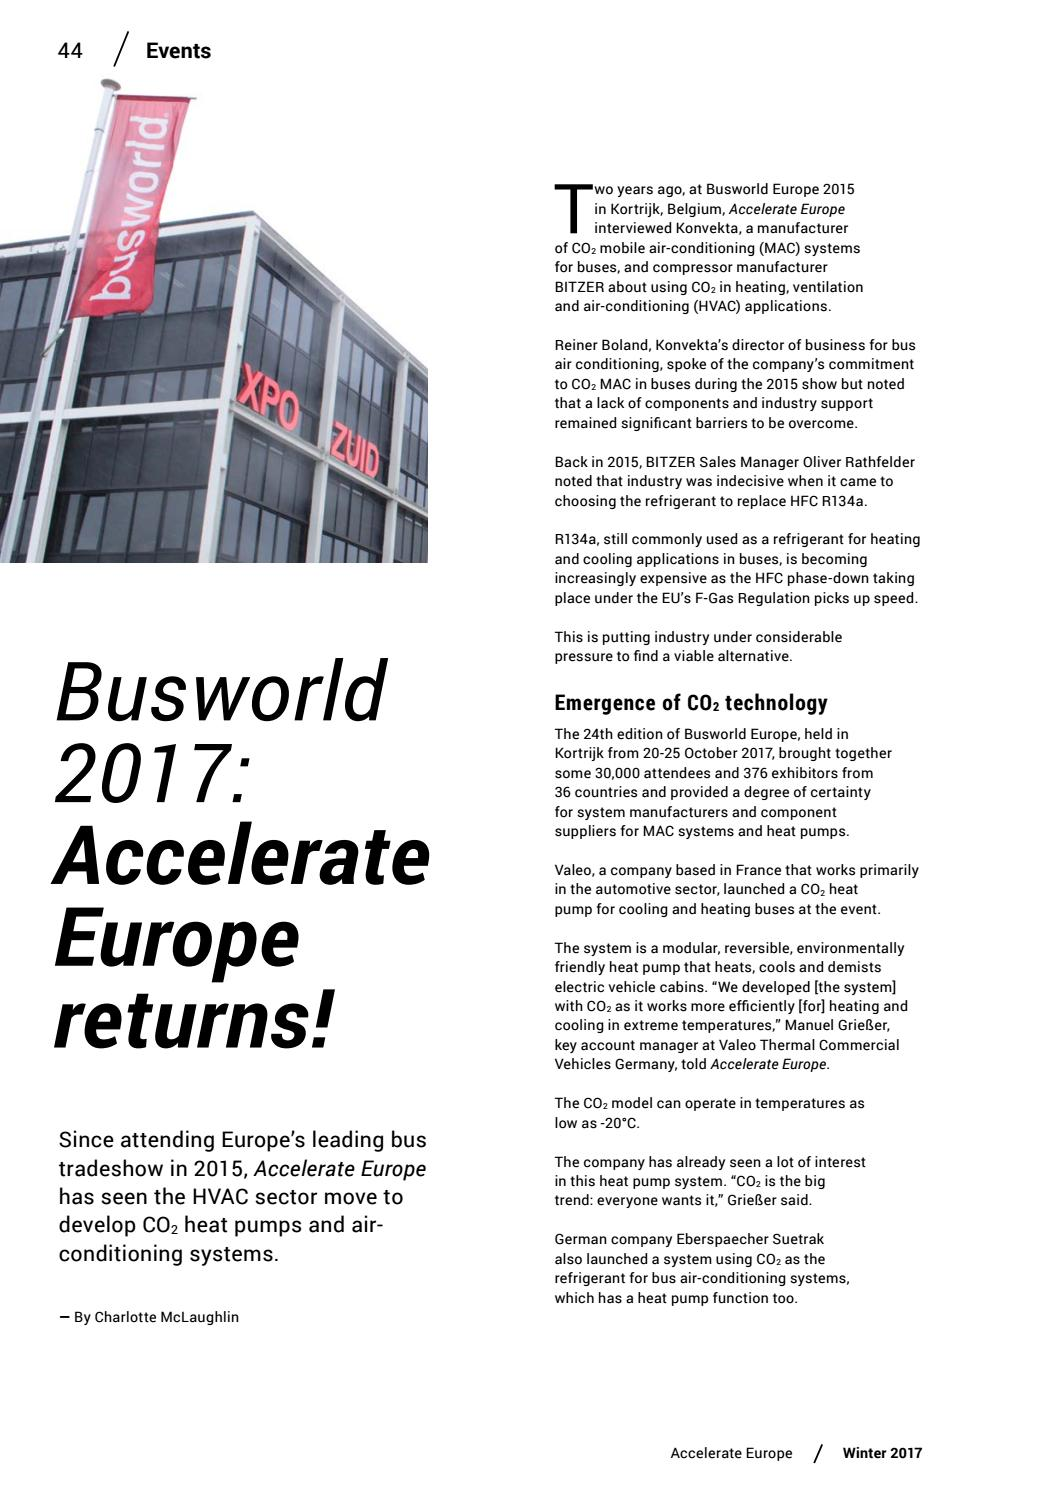 Accelerate Europe #9 Winter 2017 by shecco - issuu